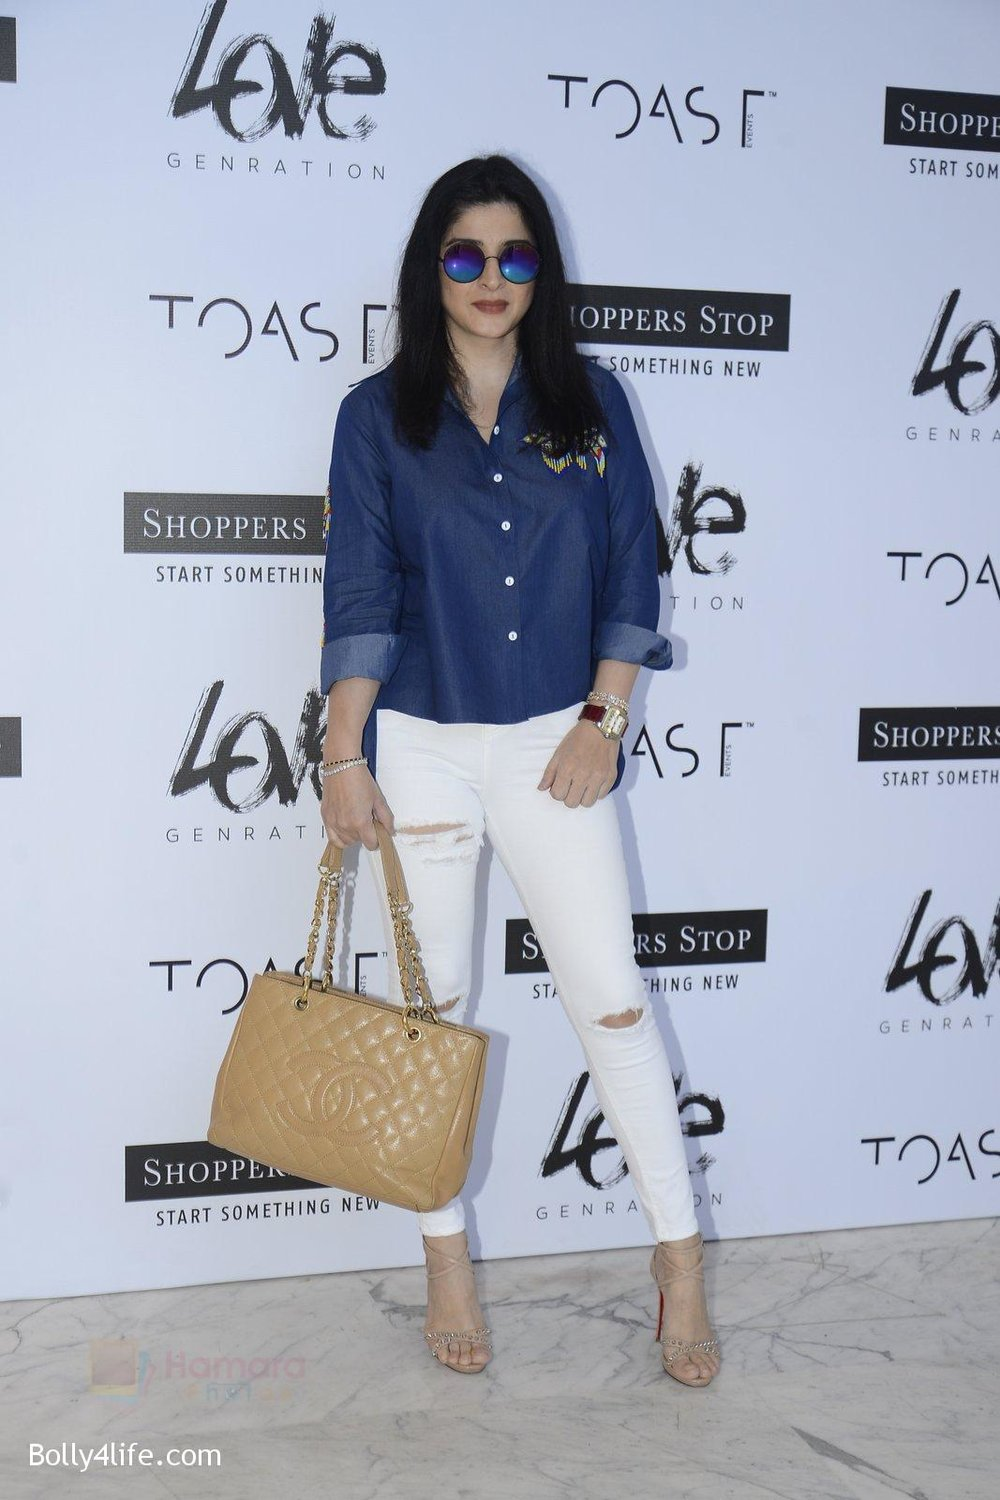 Maheep-Kapoor-at-Love-Generation-launch-at-Shoppers-Stop-on-7th-Oct-2016-71.jpg